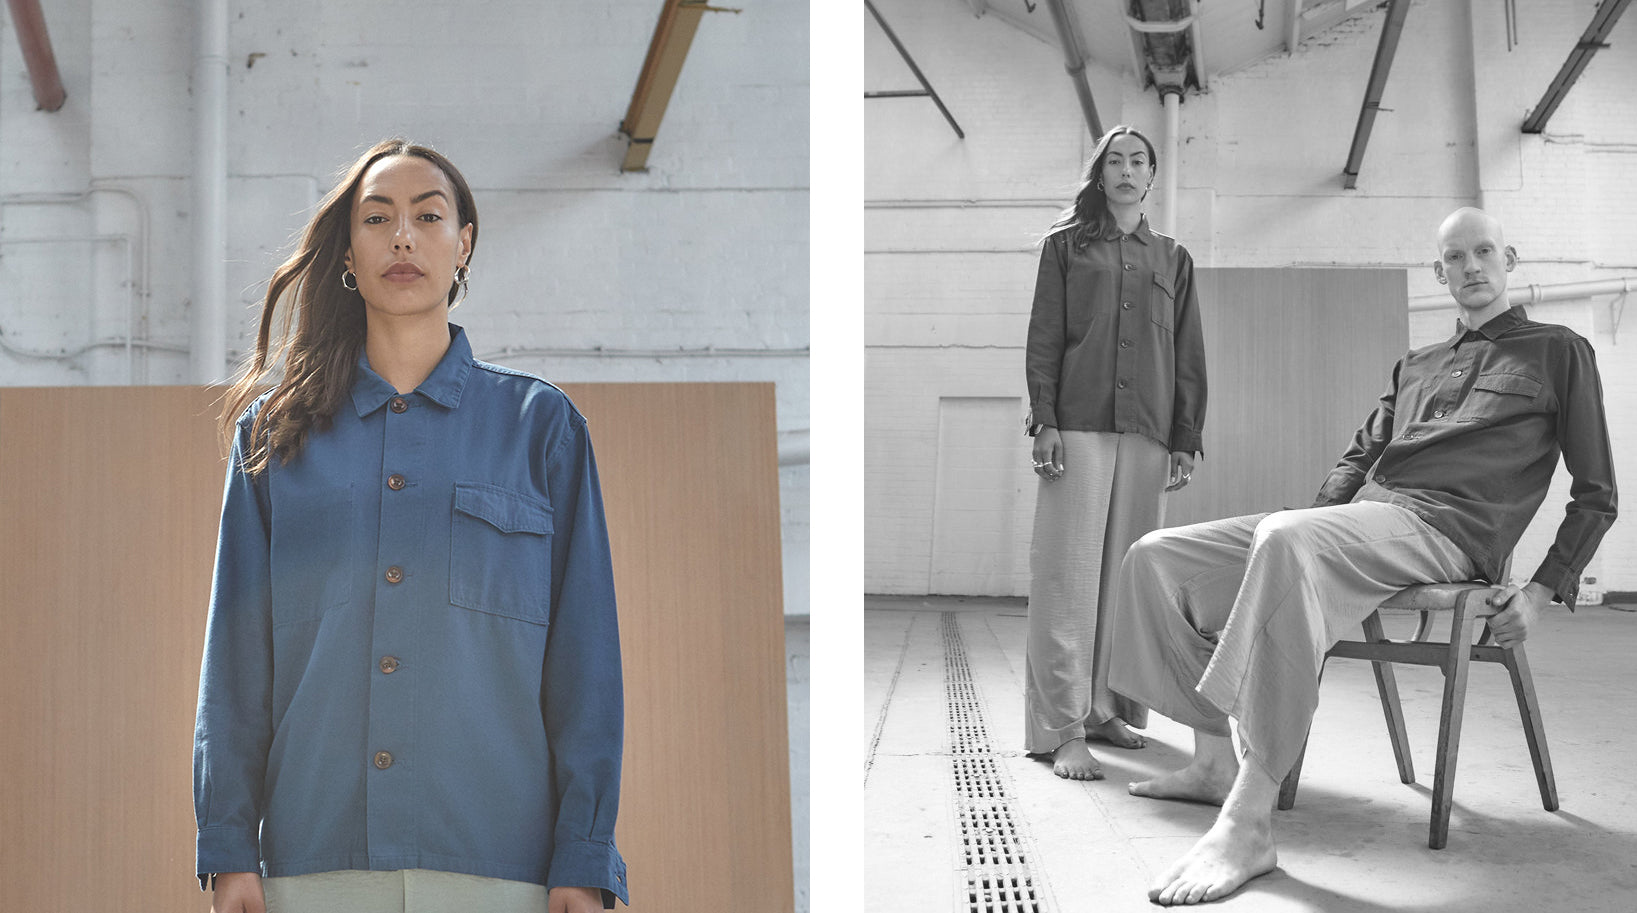 Panel containing 2 images. On the left, a colour image of a woman wearing an Uskees blue button shirt and on the right, a man sitting and a woman standing wearing Uskees shirts.